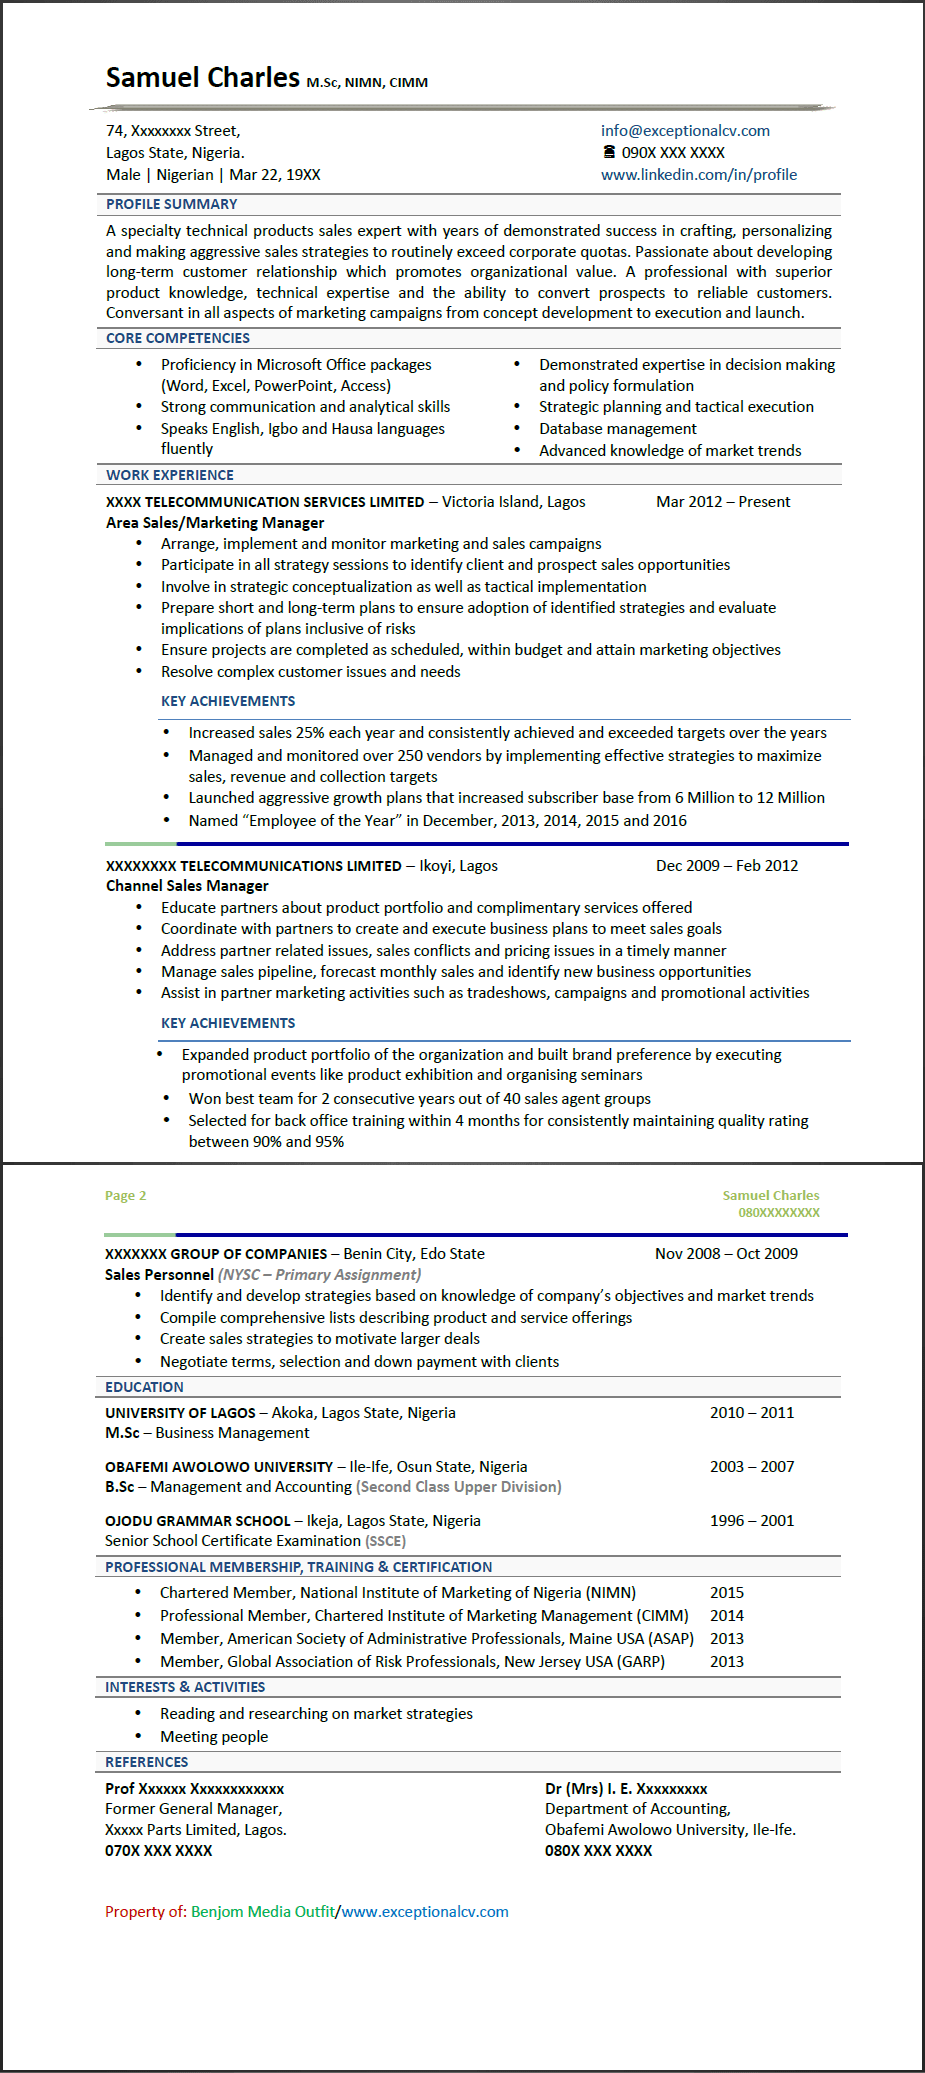 CV Samples - For CV Writing, View Outstanding CV Samples You Can Use